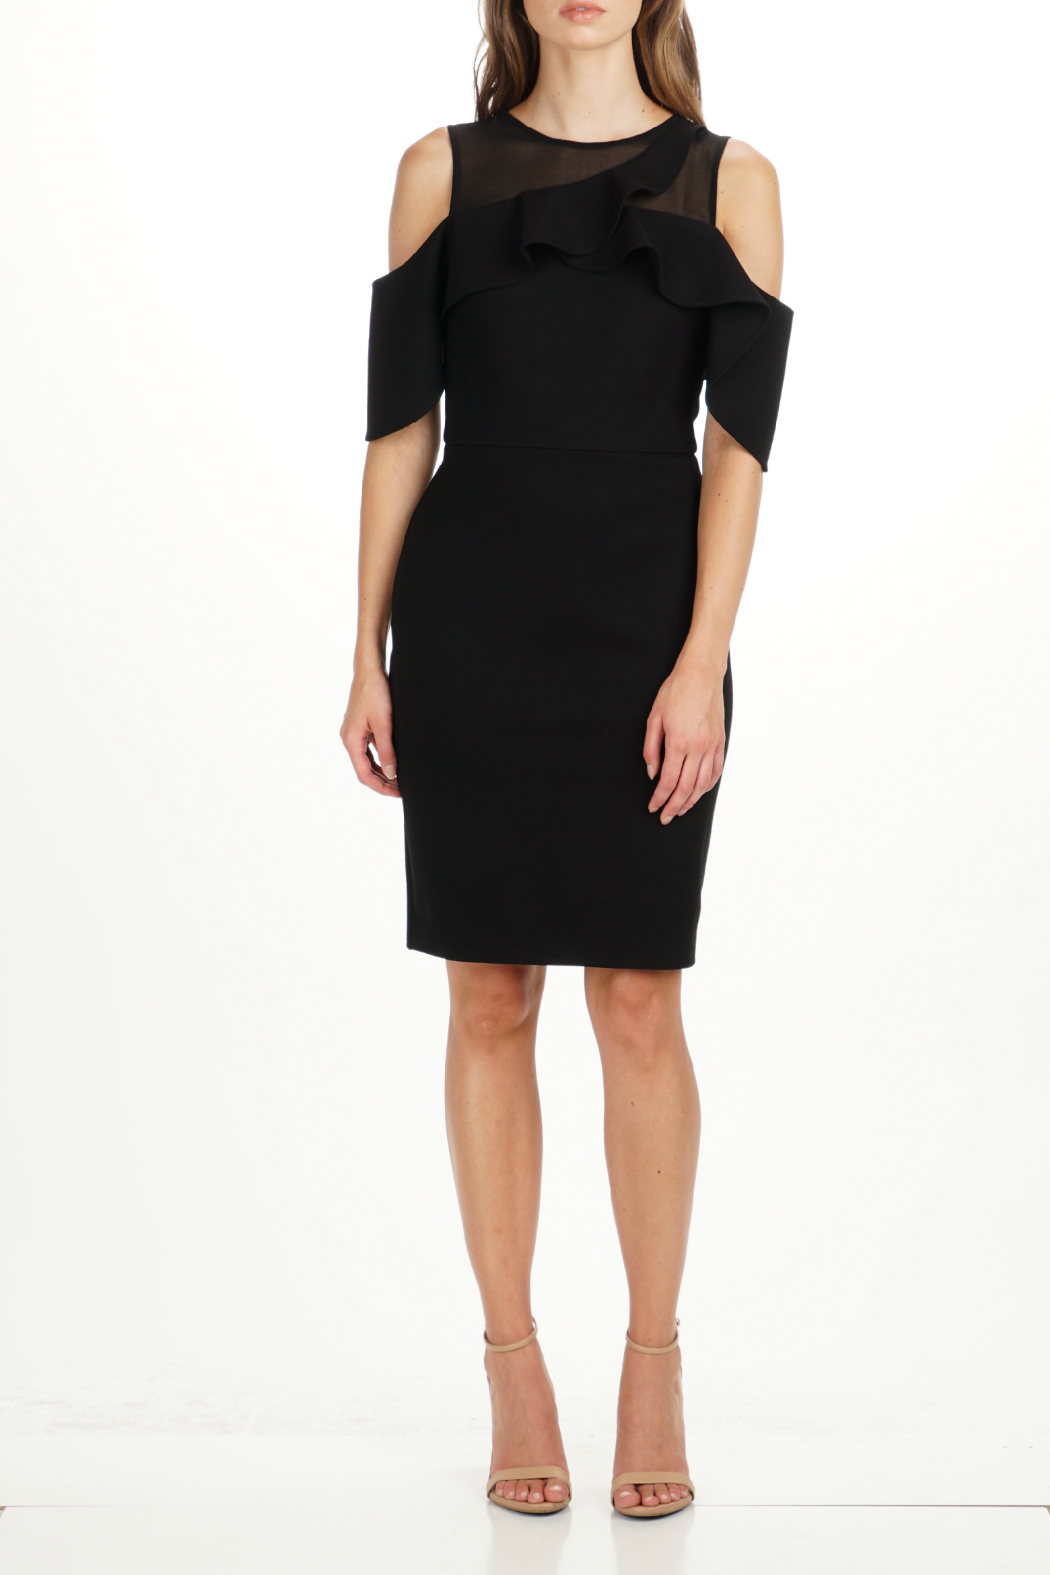 Adelyn Rae Luz OTS Illusion Neck Dress - Front Cropped Image